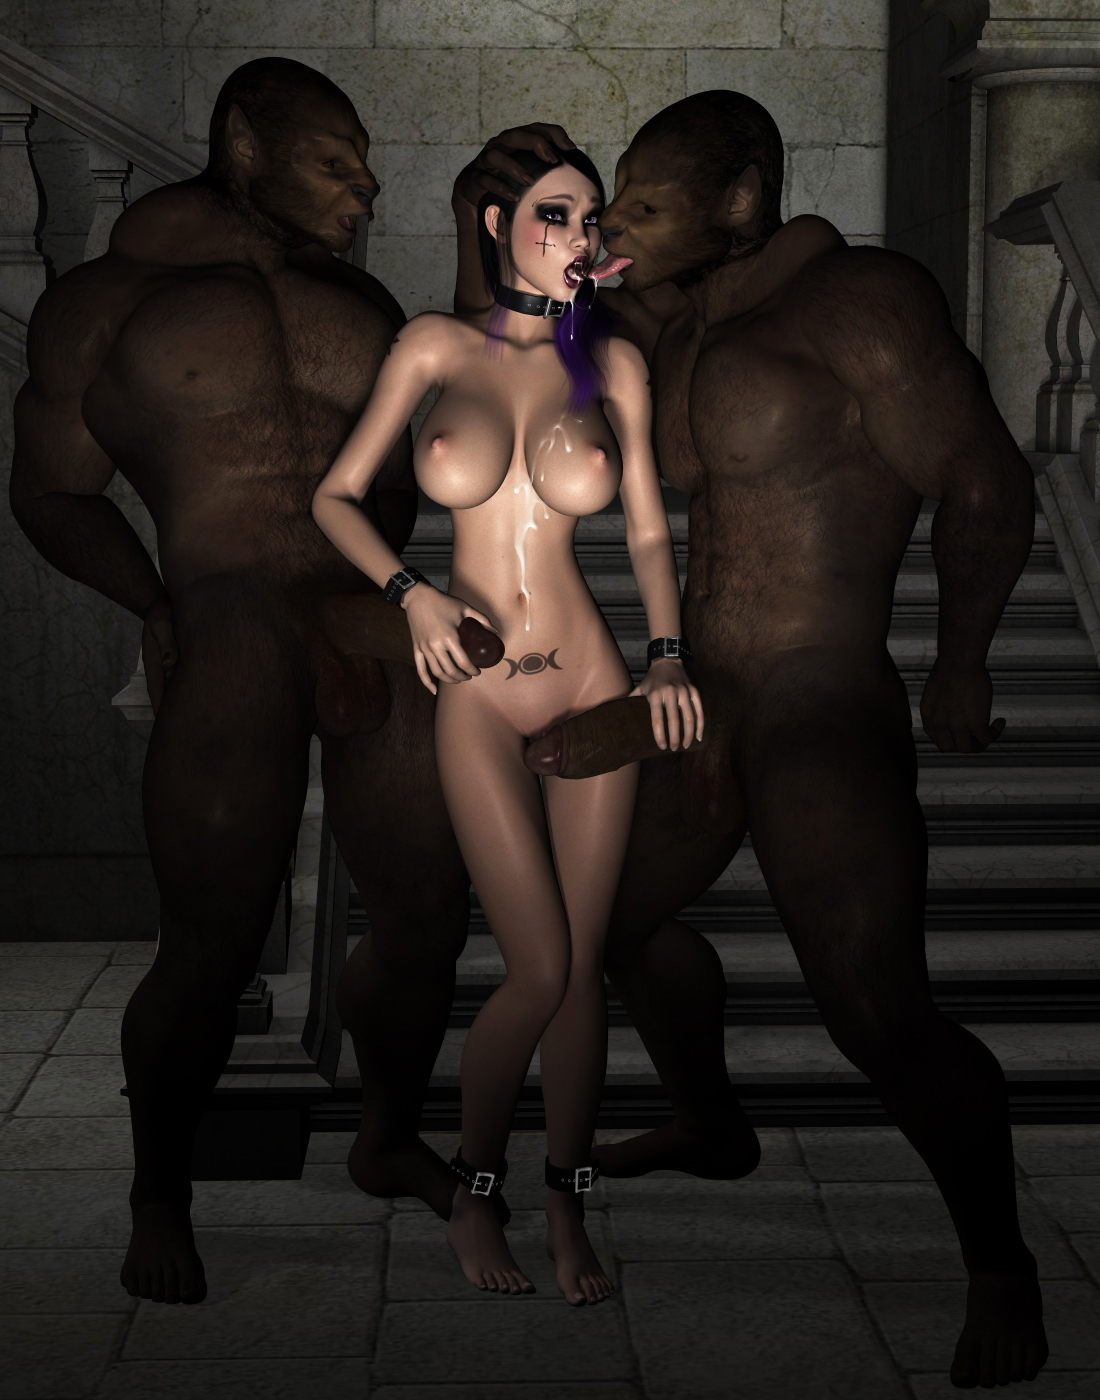 Porno slave monster naked images